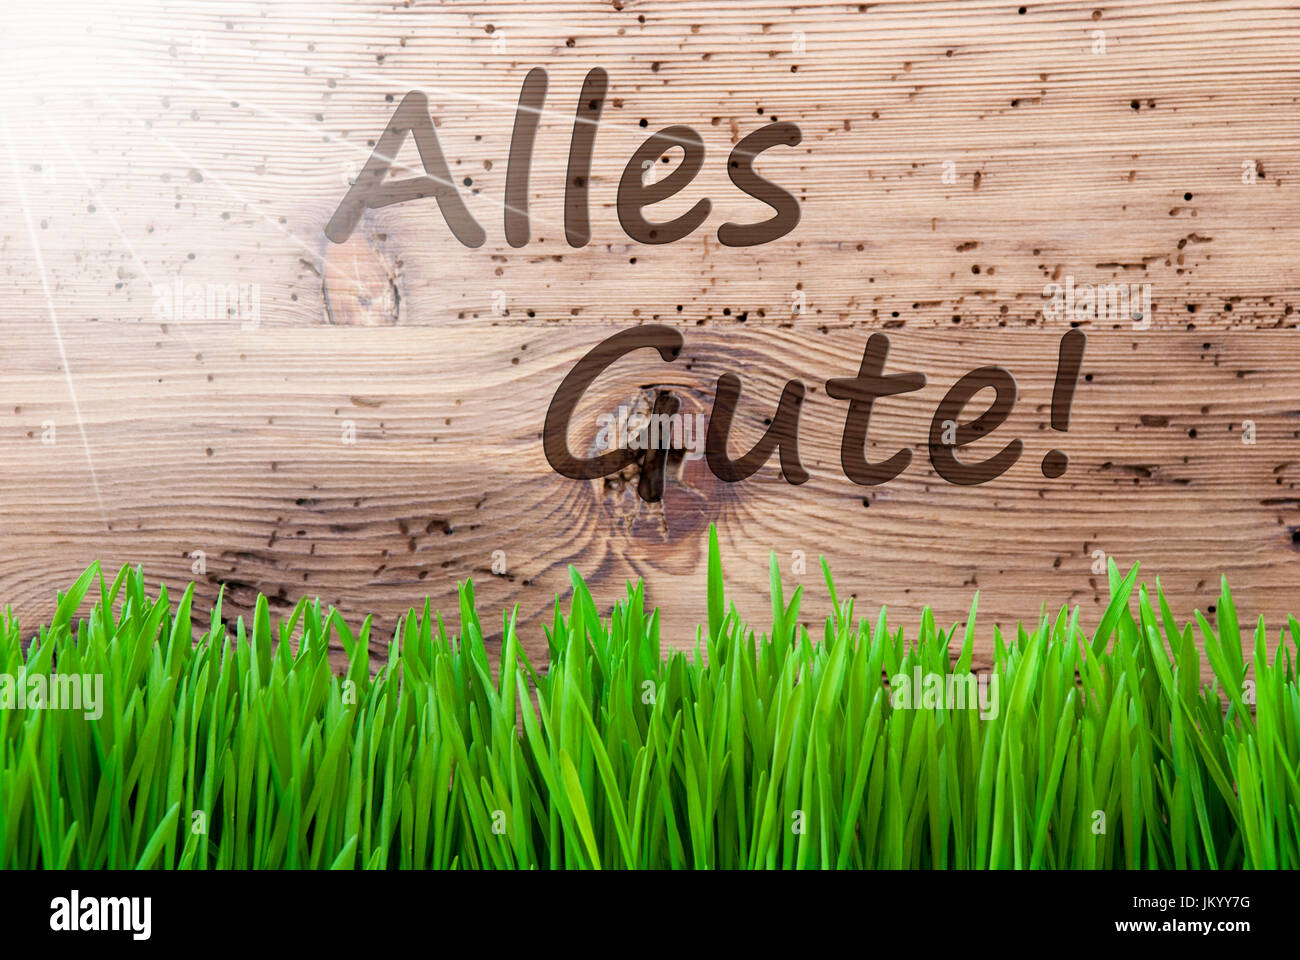 German Text Alles Gute Means Best Wishes Spring Season Greeting